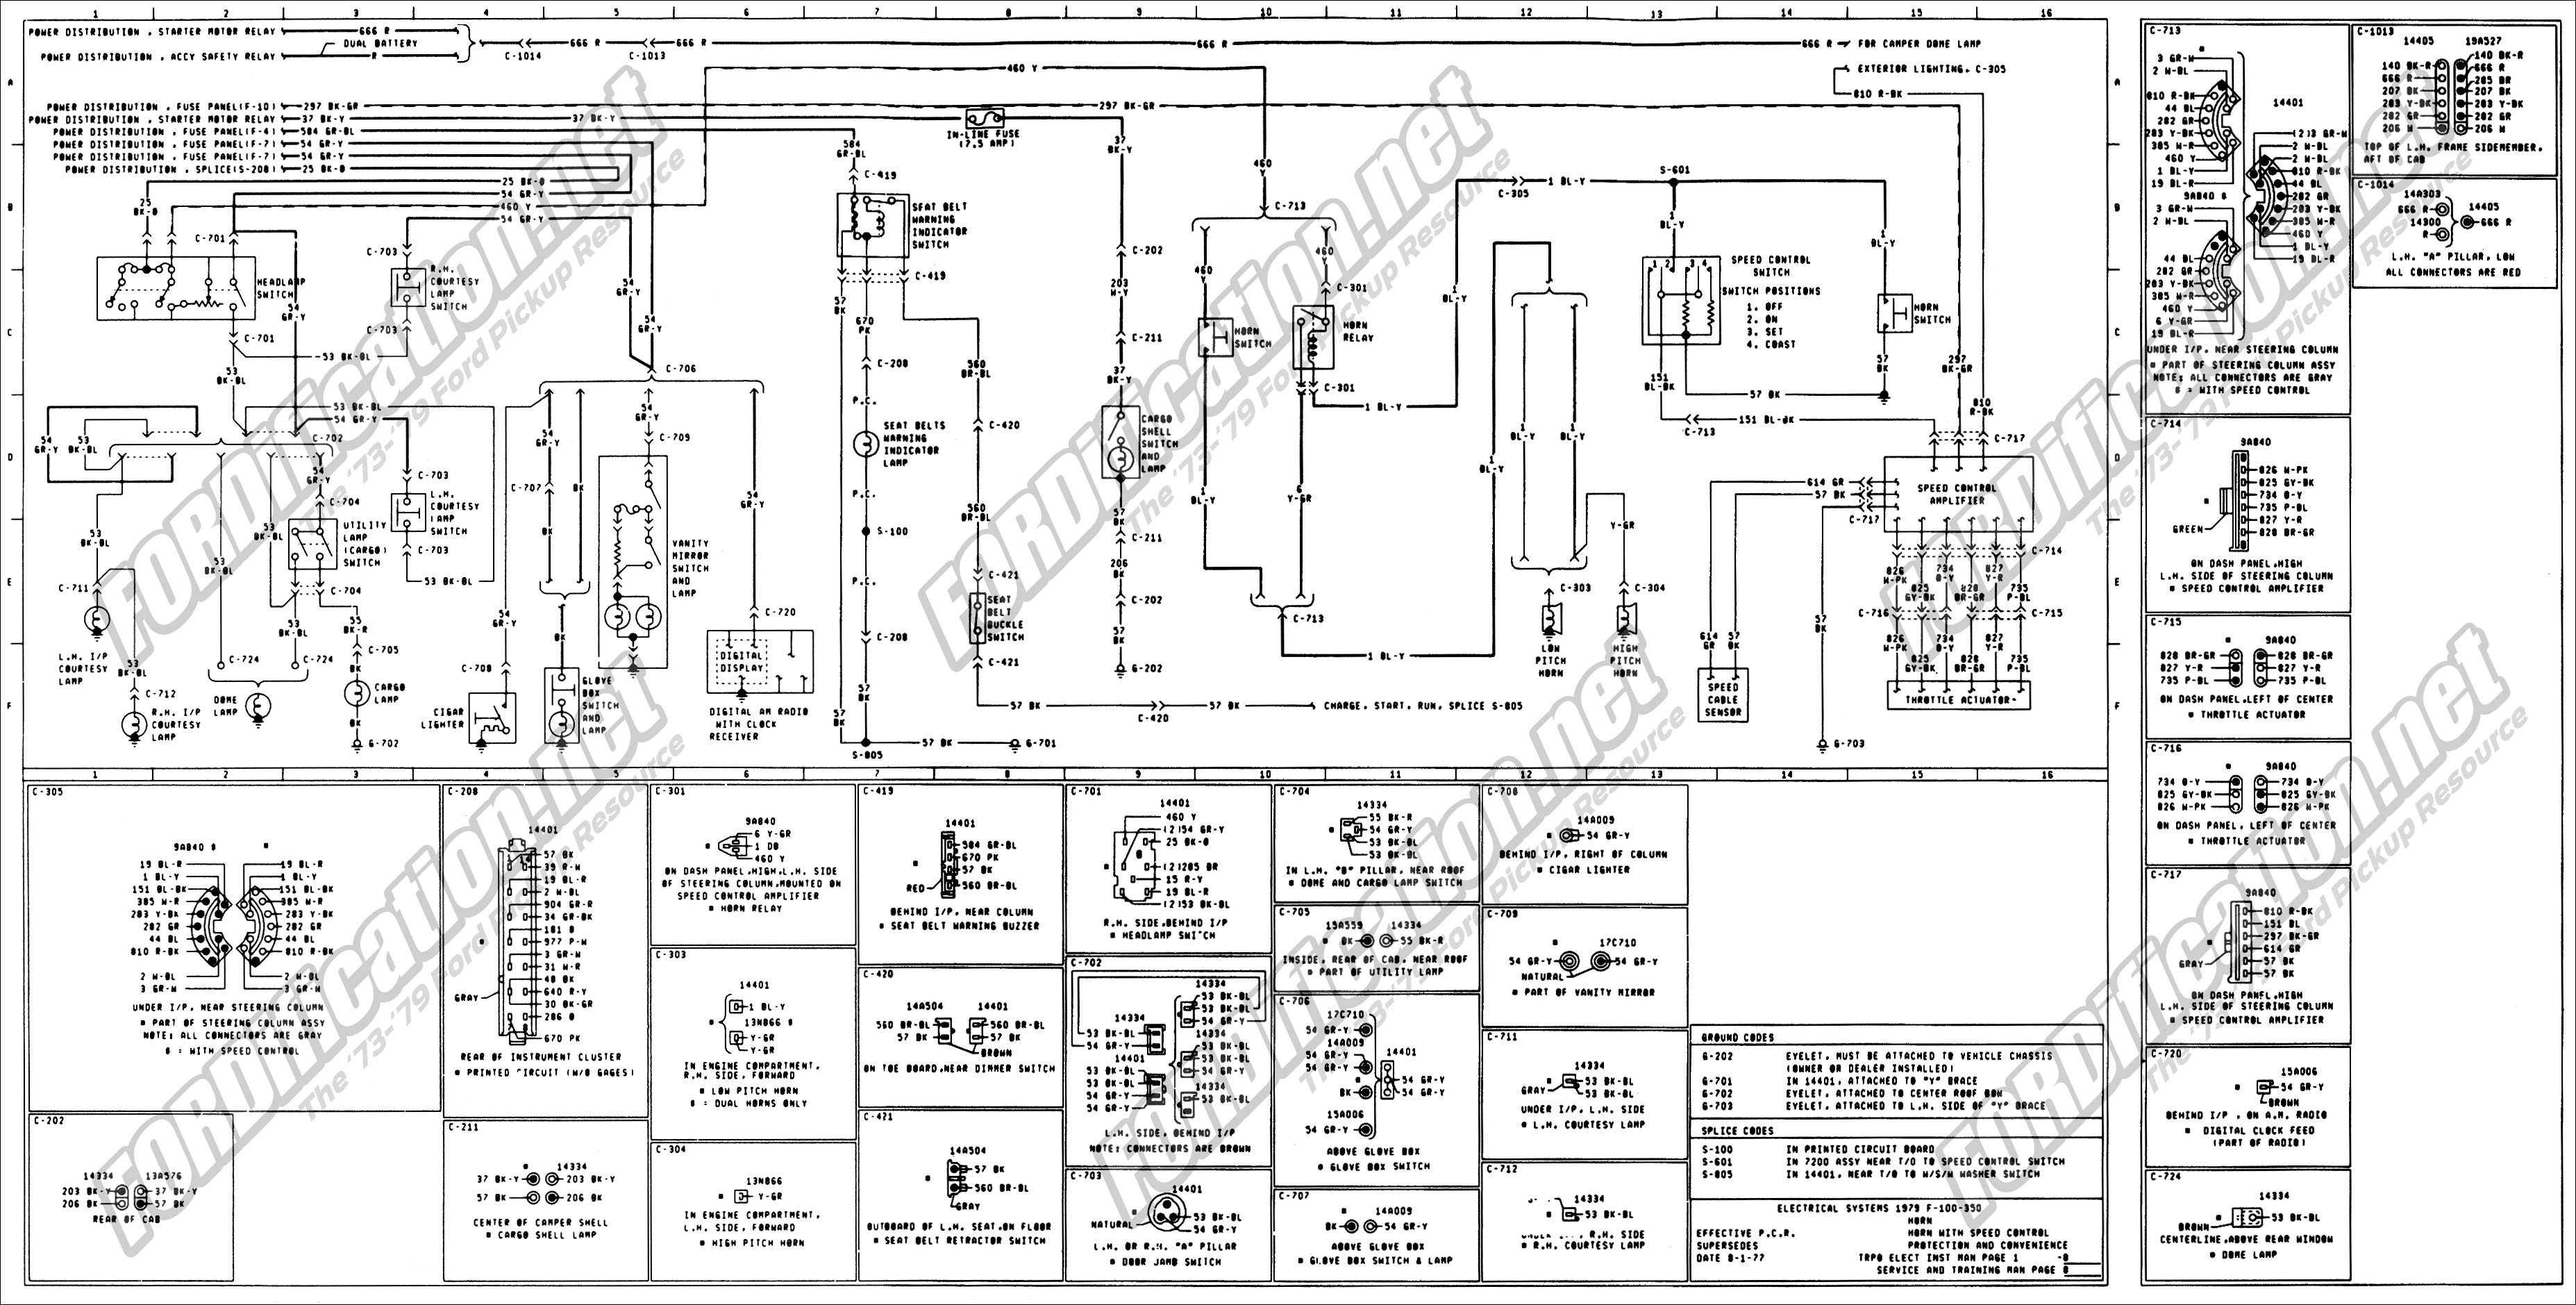 1978 ford f100 wiring diagram wiring diagram database1978 ford f250 wiring diagram www cryptopotato co \\u2022 ford truck engine diagram 1978 ford f100 wiring diagram